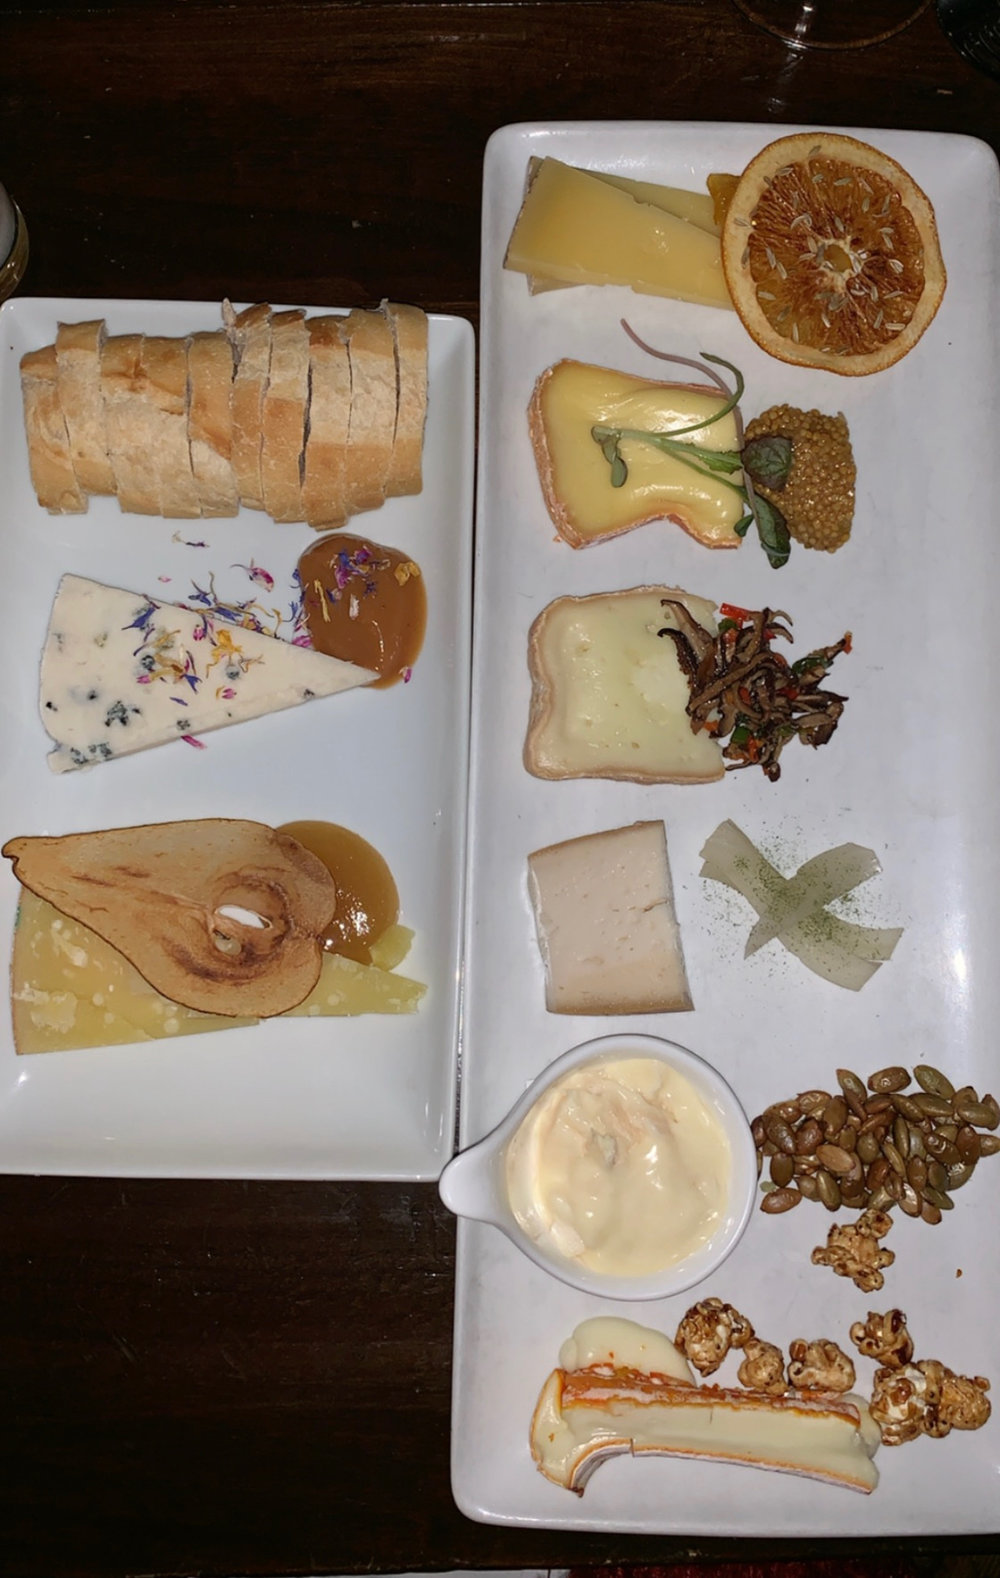 An extravagant cheese flight at Casellula.